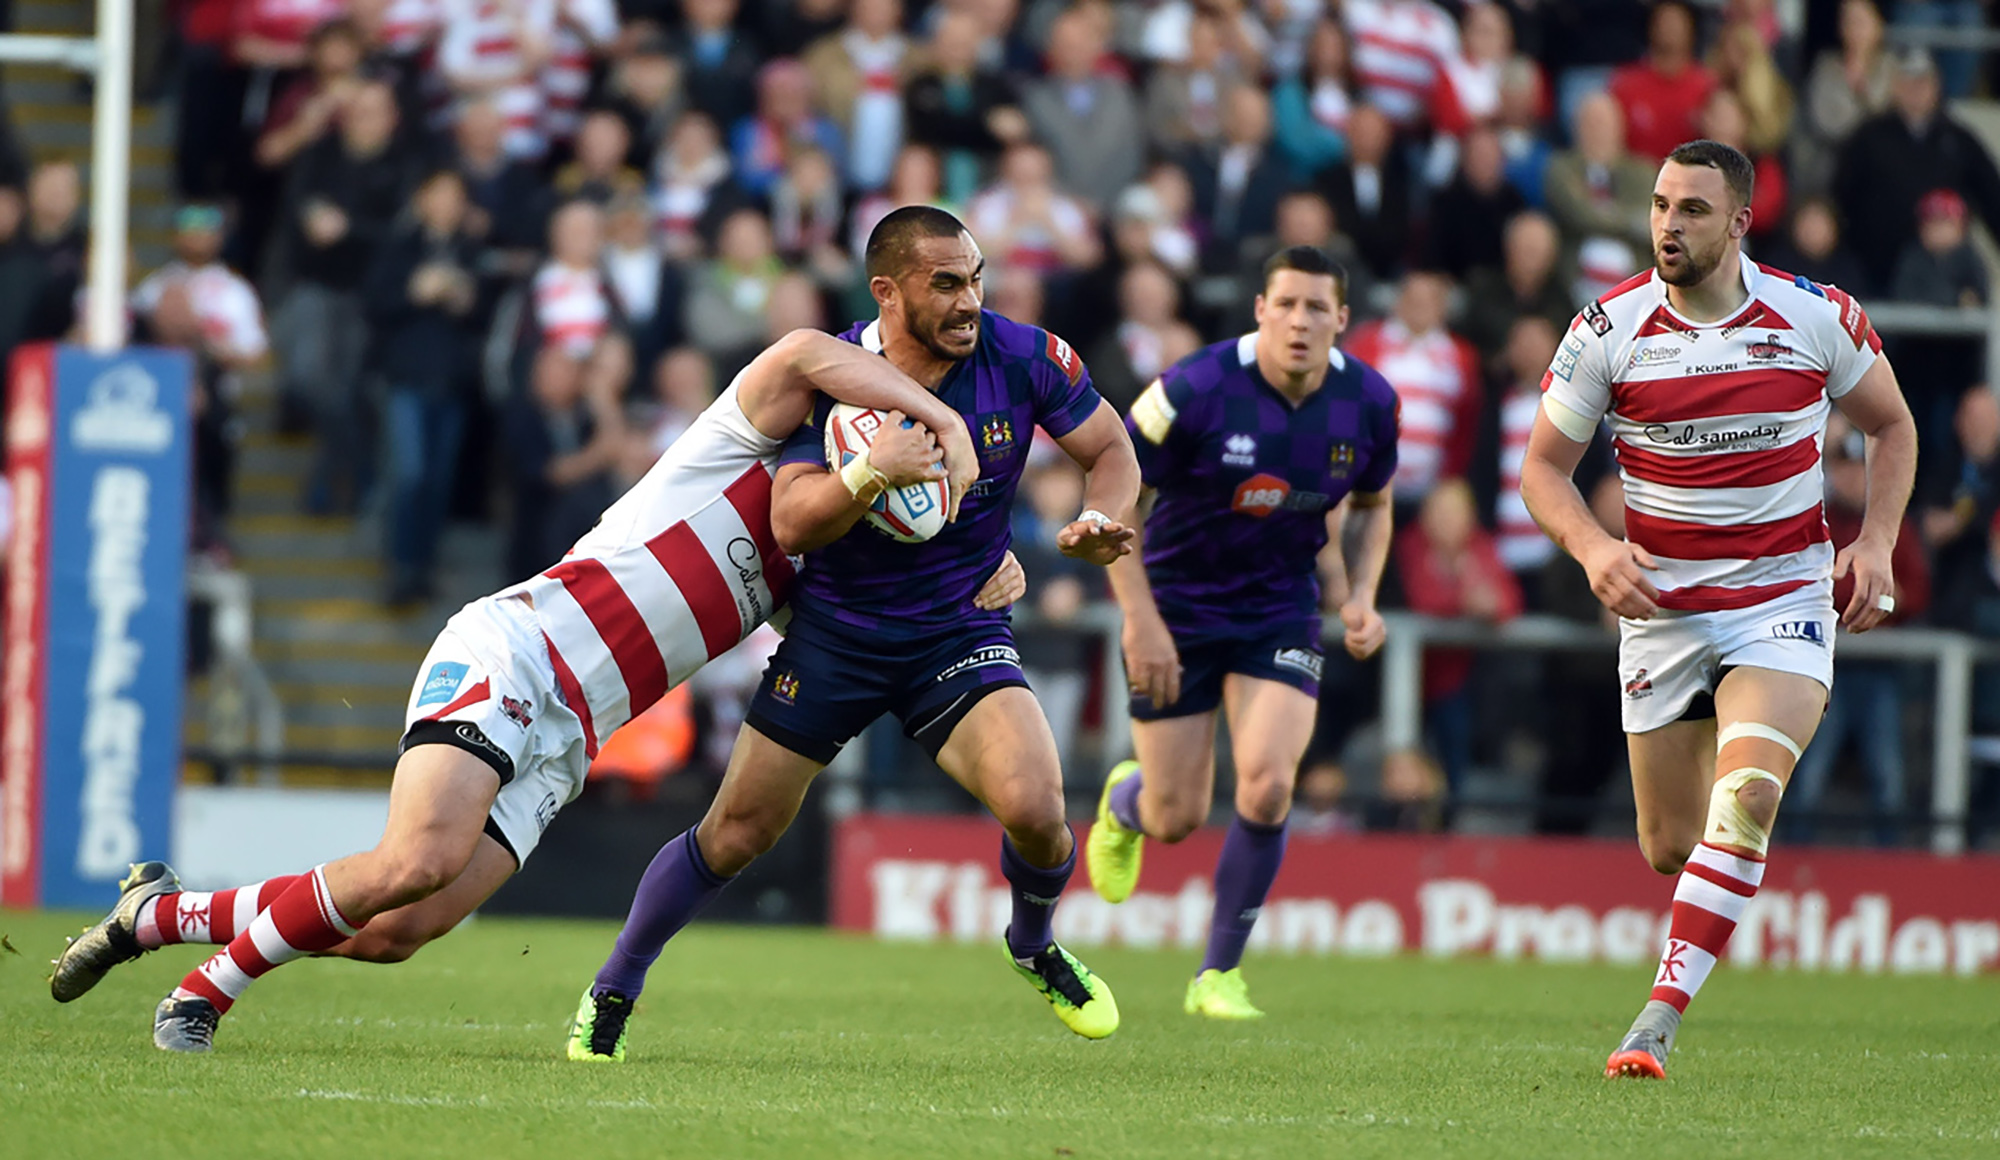 Leigh 50 Wigan 34